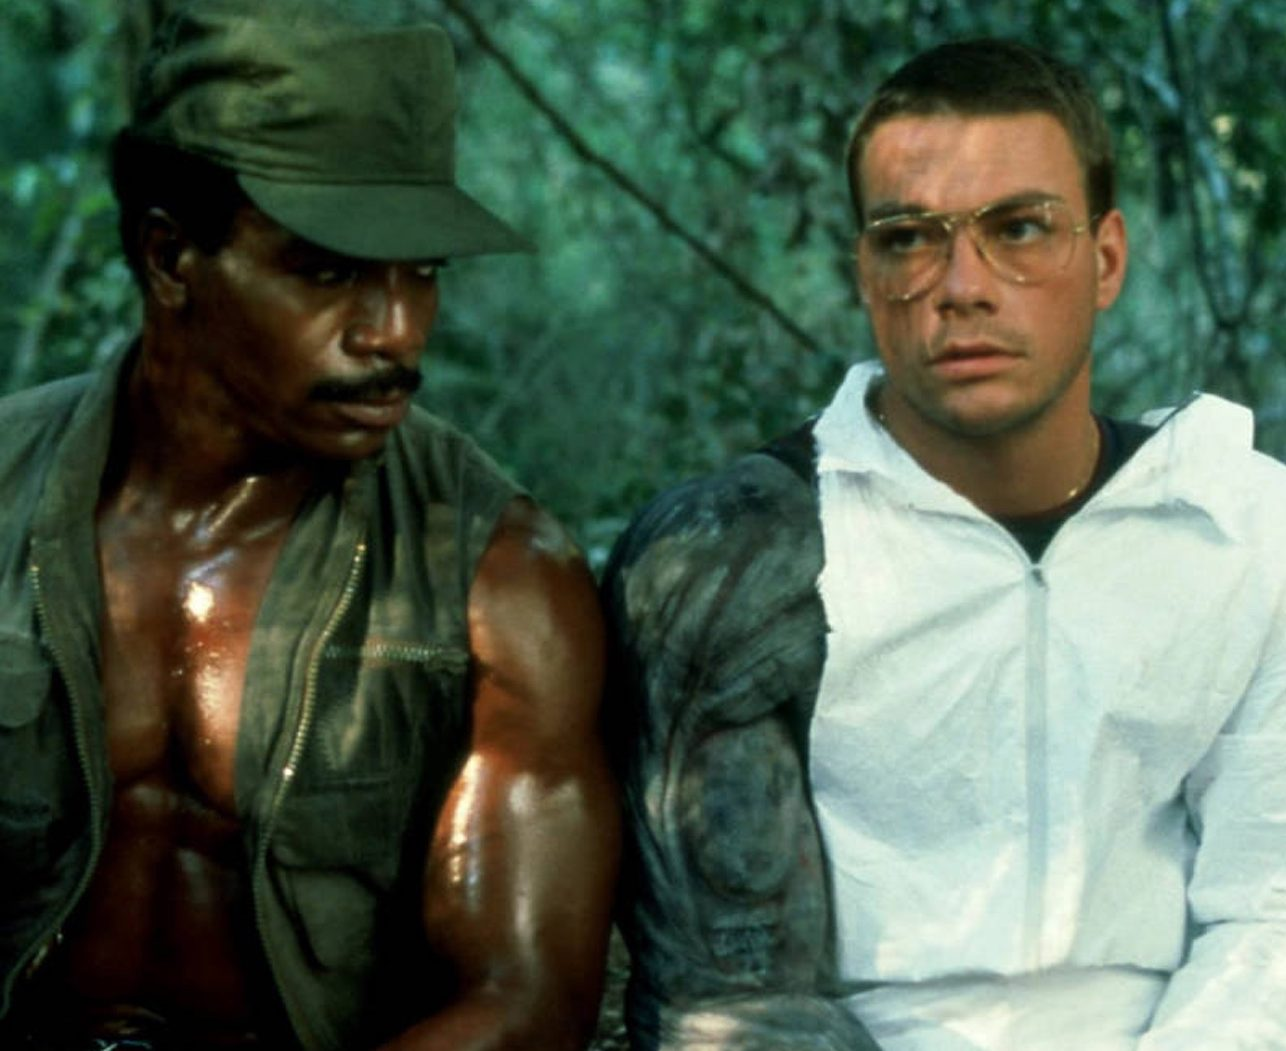 image asset 2 e1621861377397 25 Things You Probably Didn't Know About Jean-Claude Van Damme